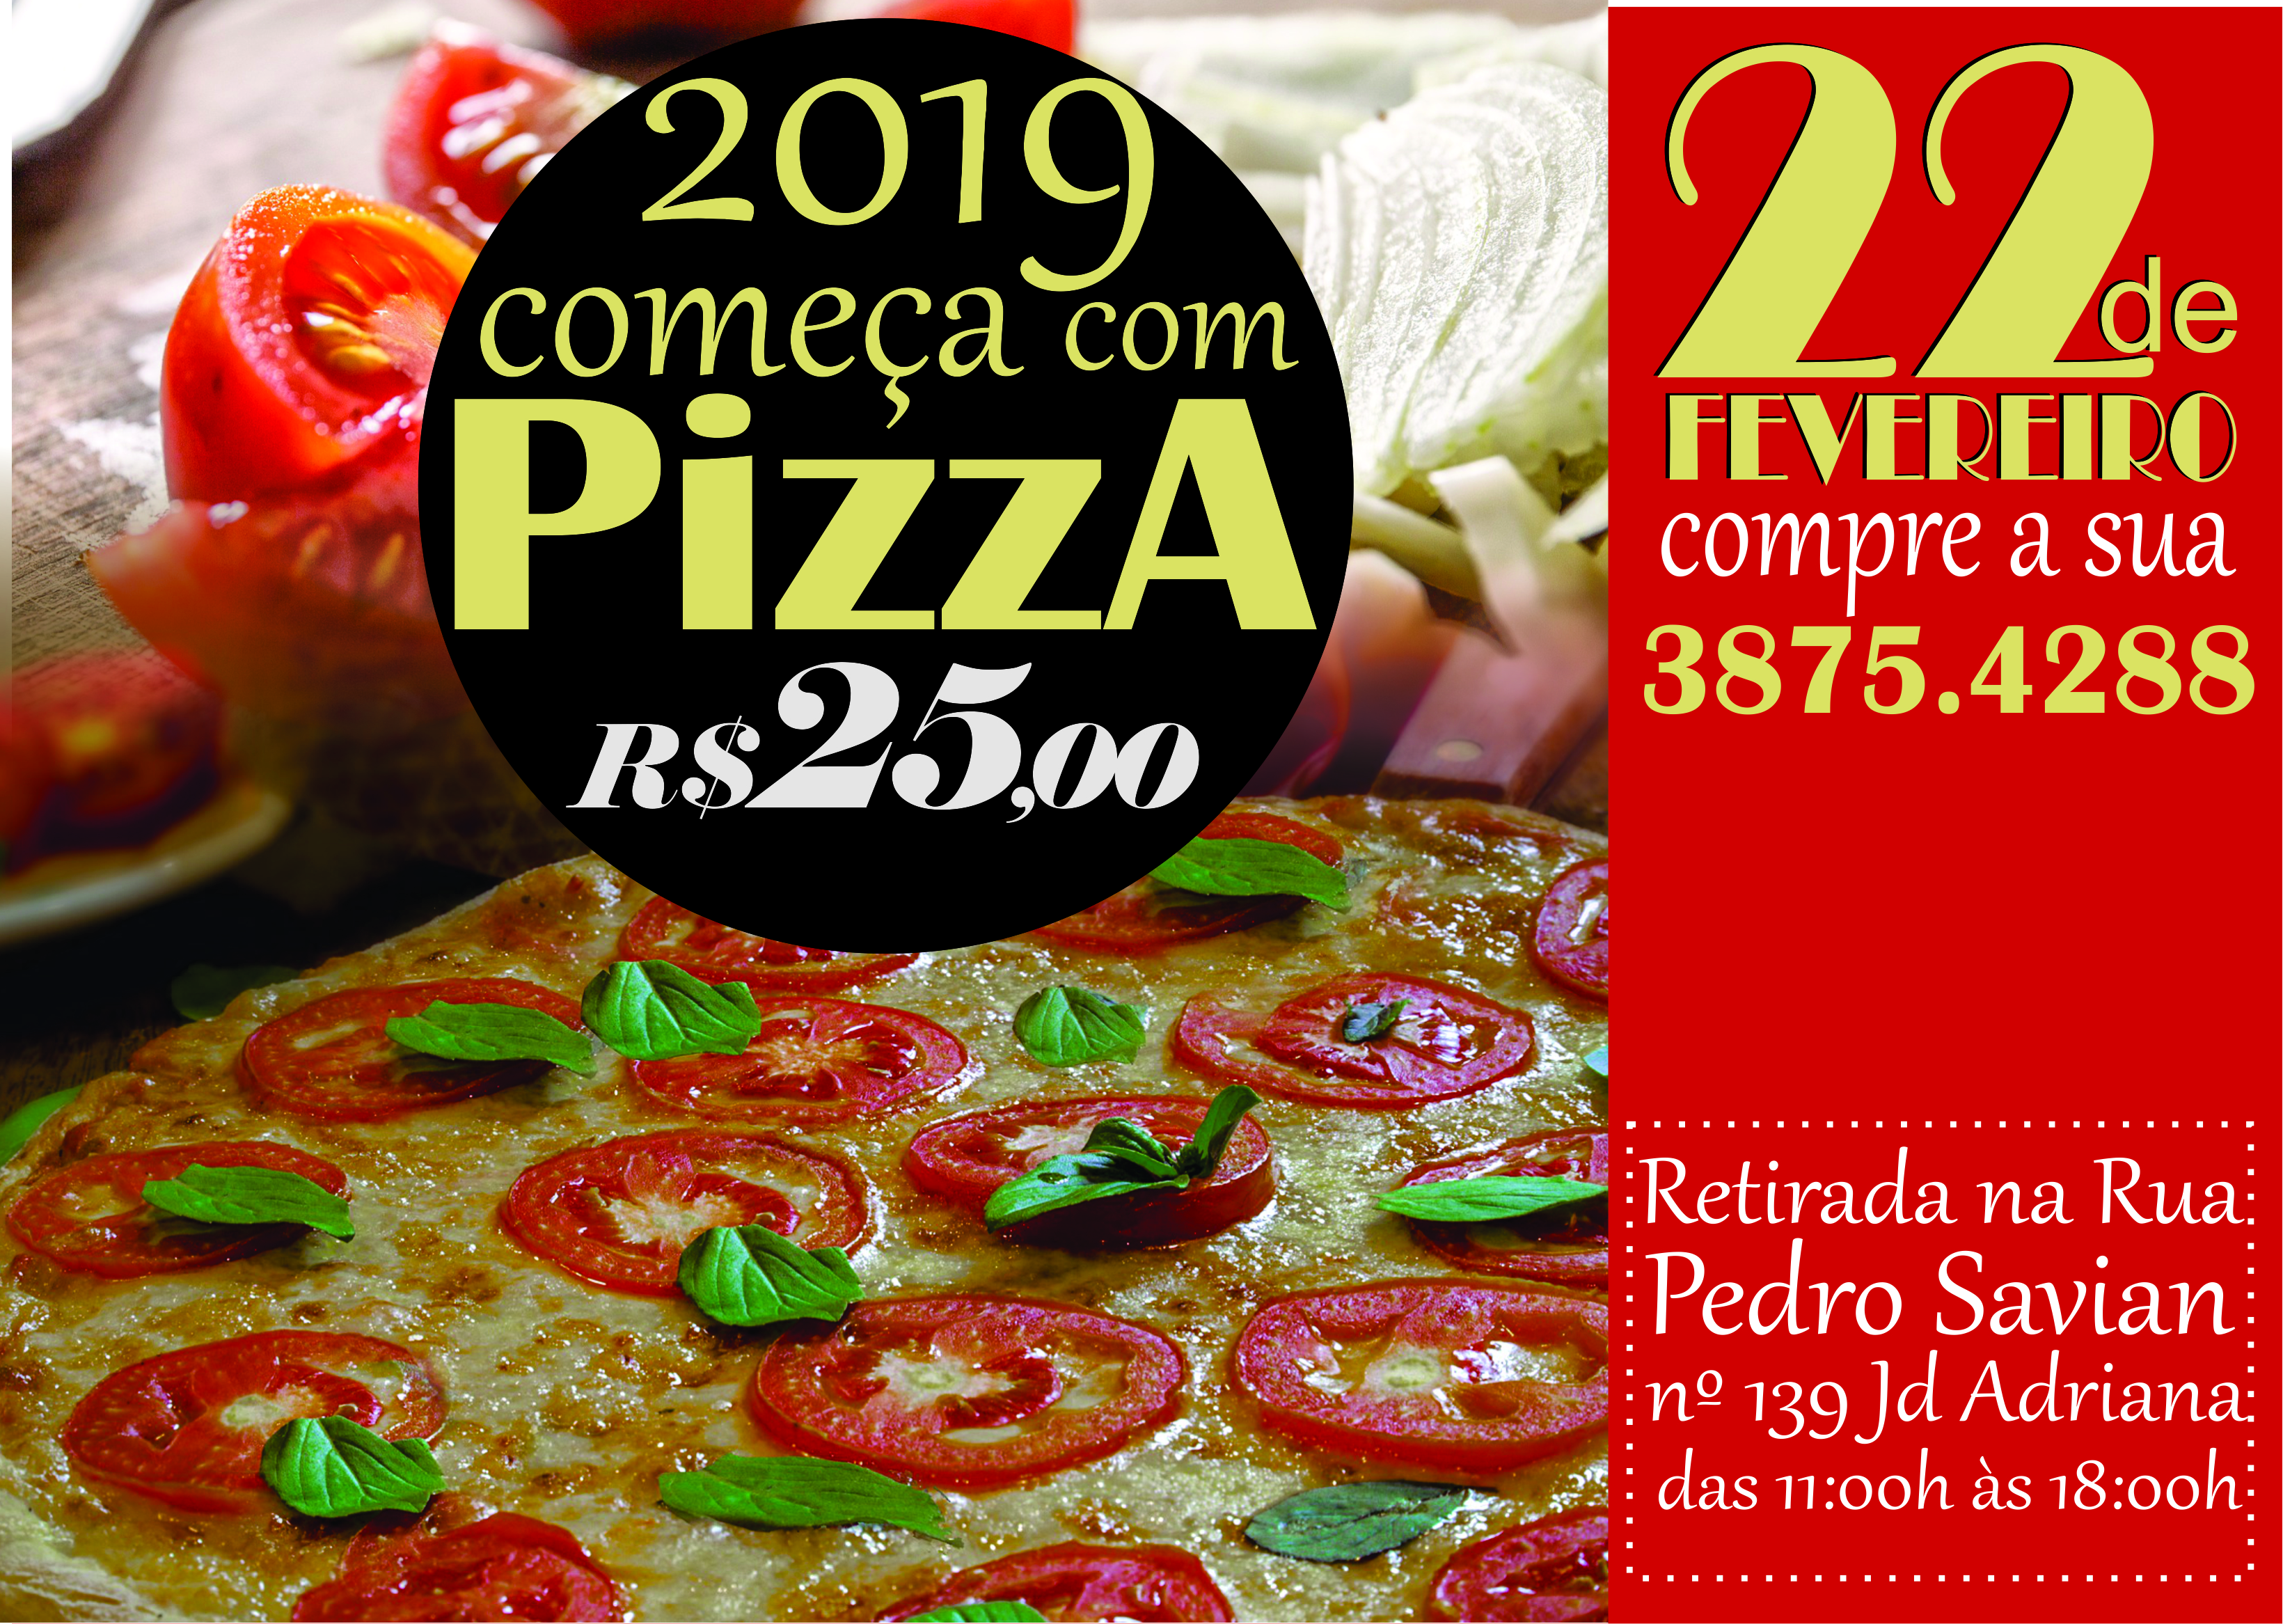 2ª PIZZA BENEFICENTE